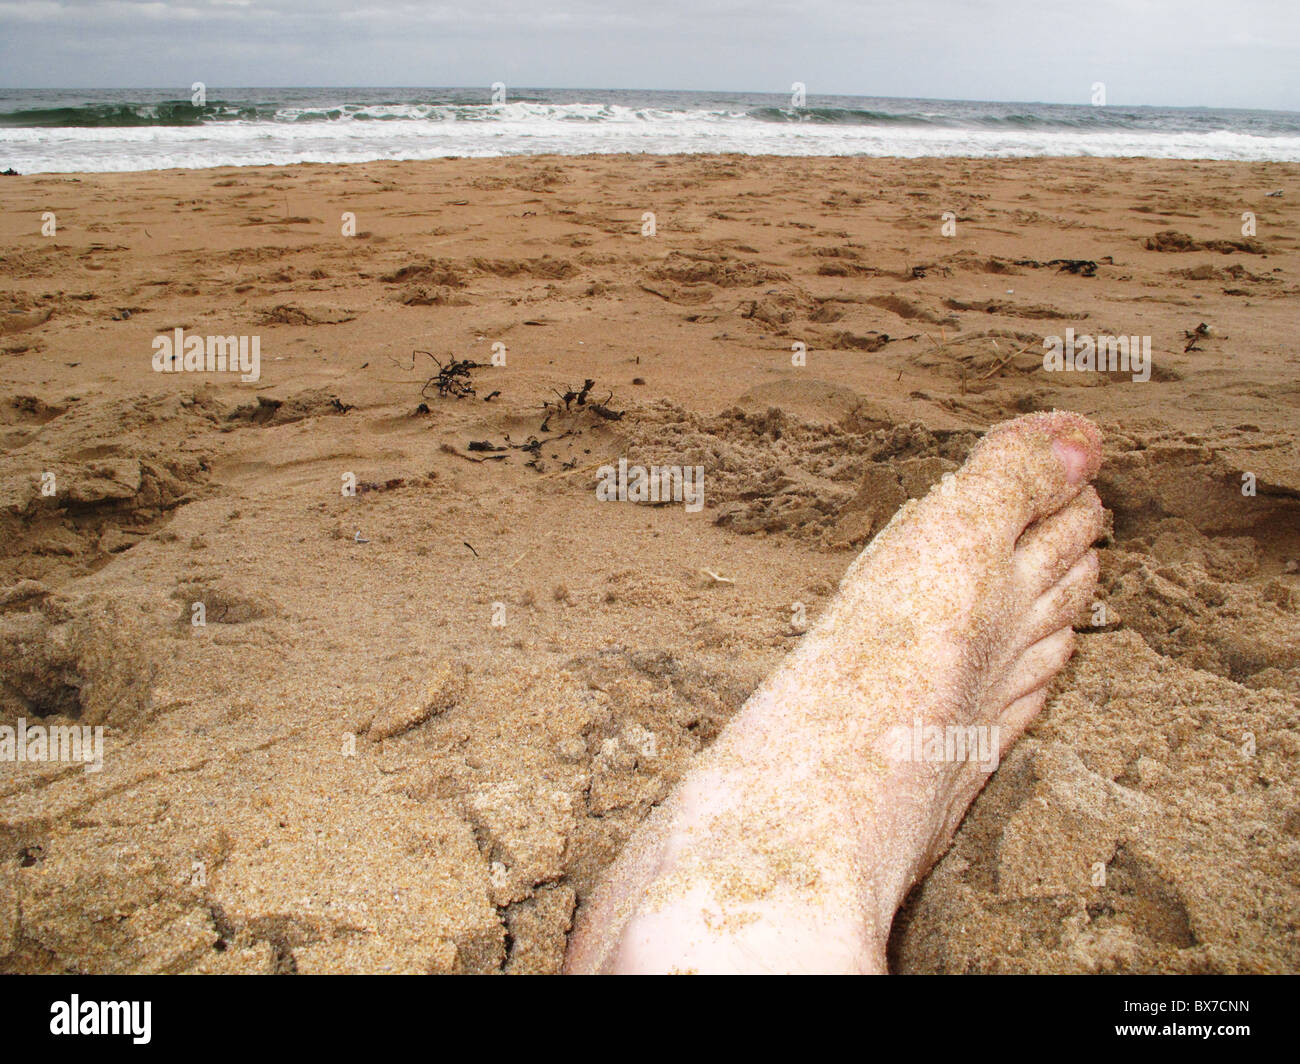 Mans foot on beach under dull sky - Stock Image